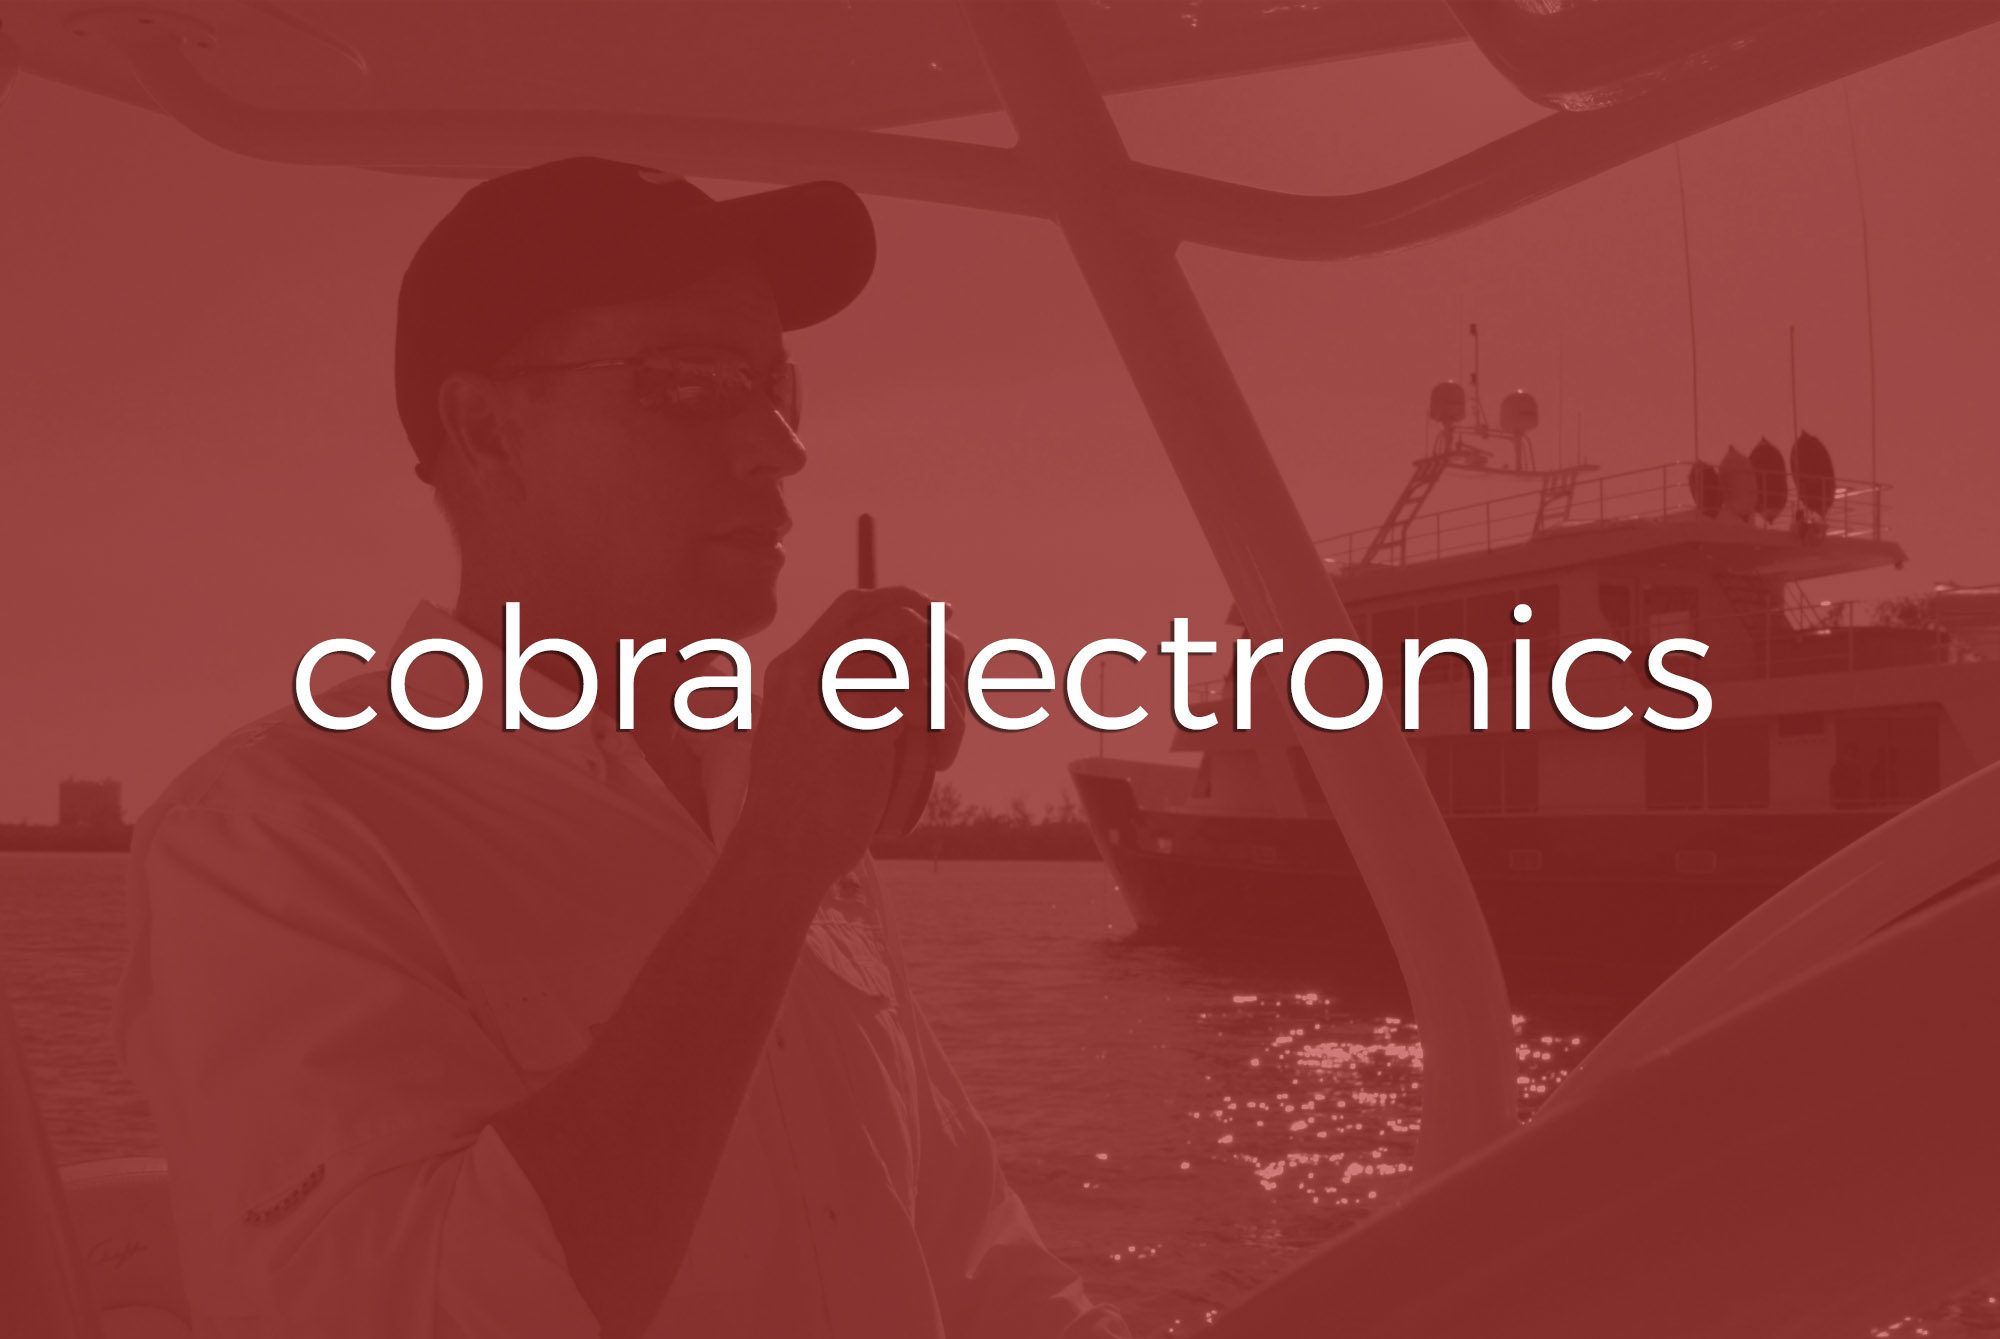 Commercial Videography & Advertising | Sarasota | Cobra Electronics